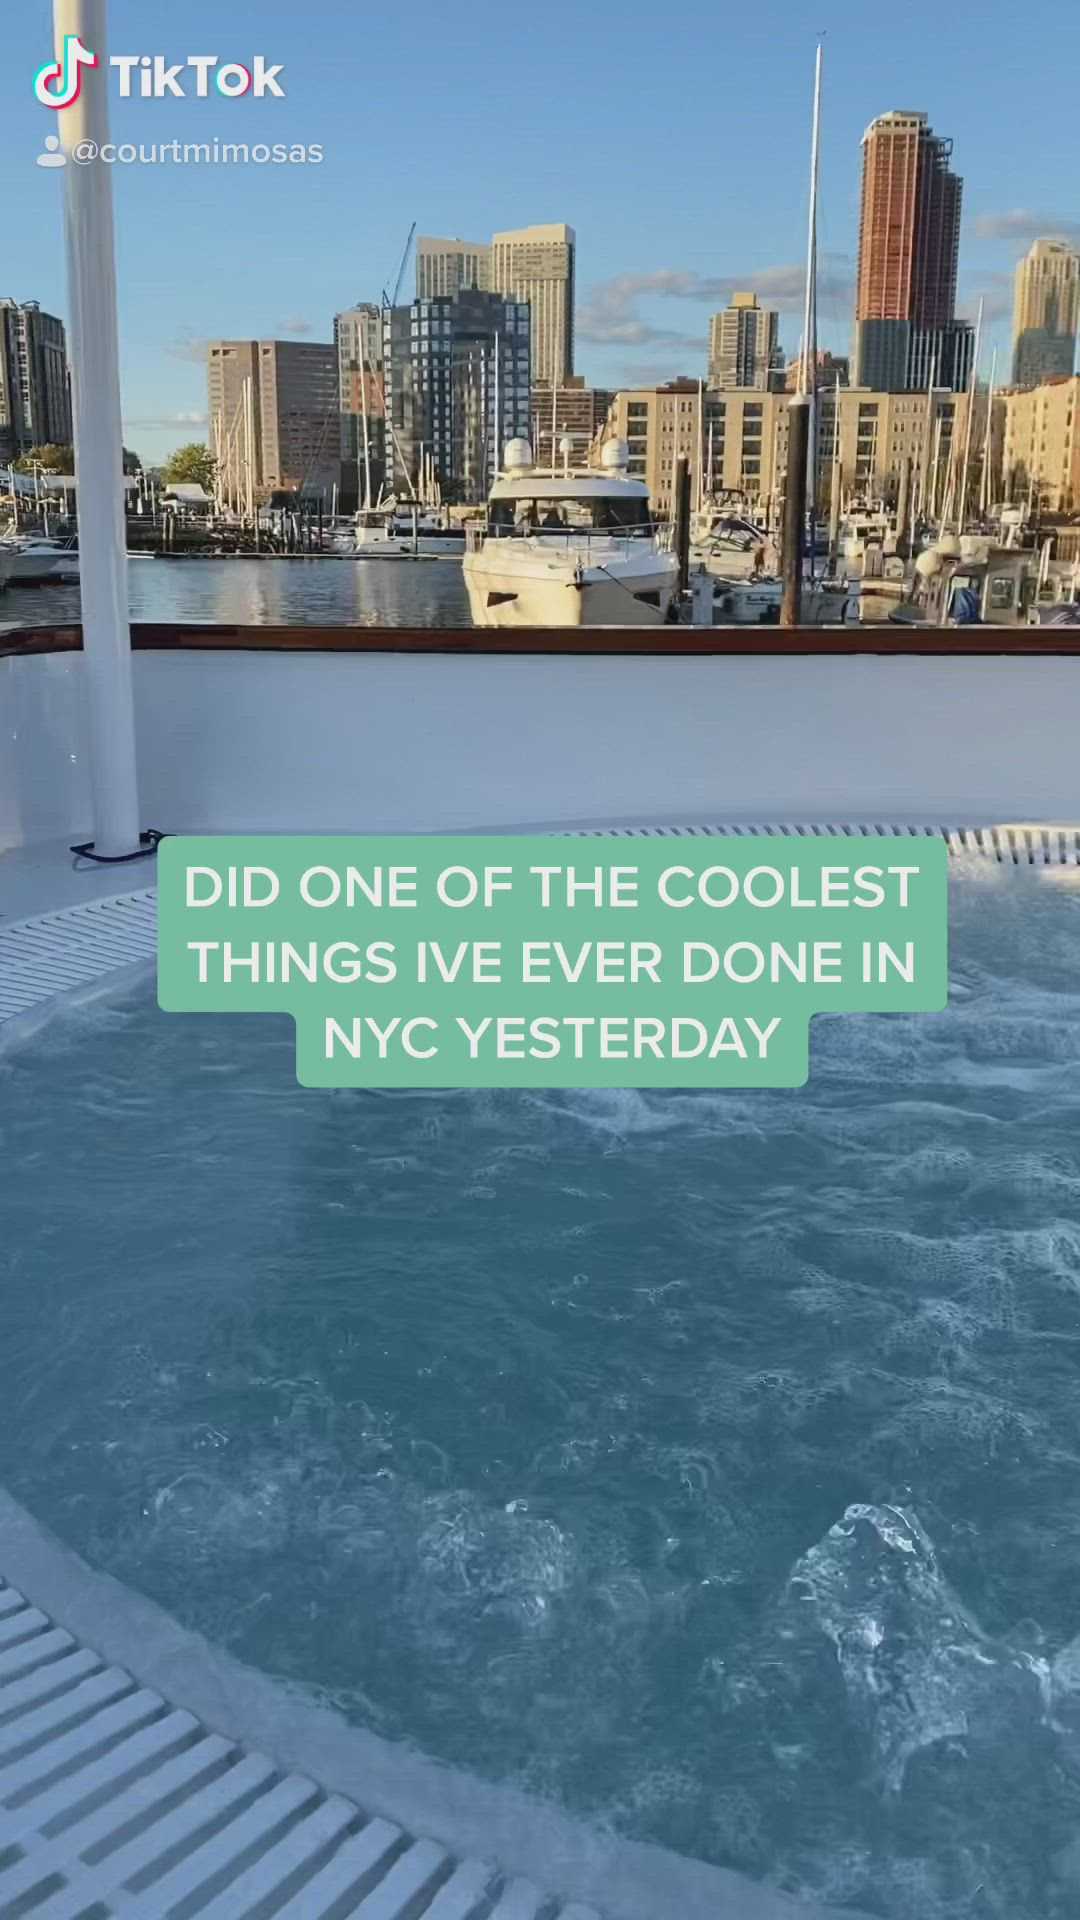 Nyc Hot Tub Tour Video In 2021 Activities In Nyc New York Travel Nyc Tours